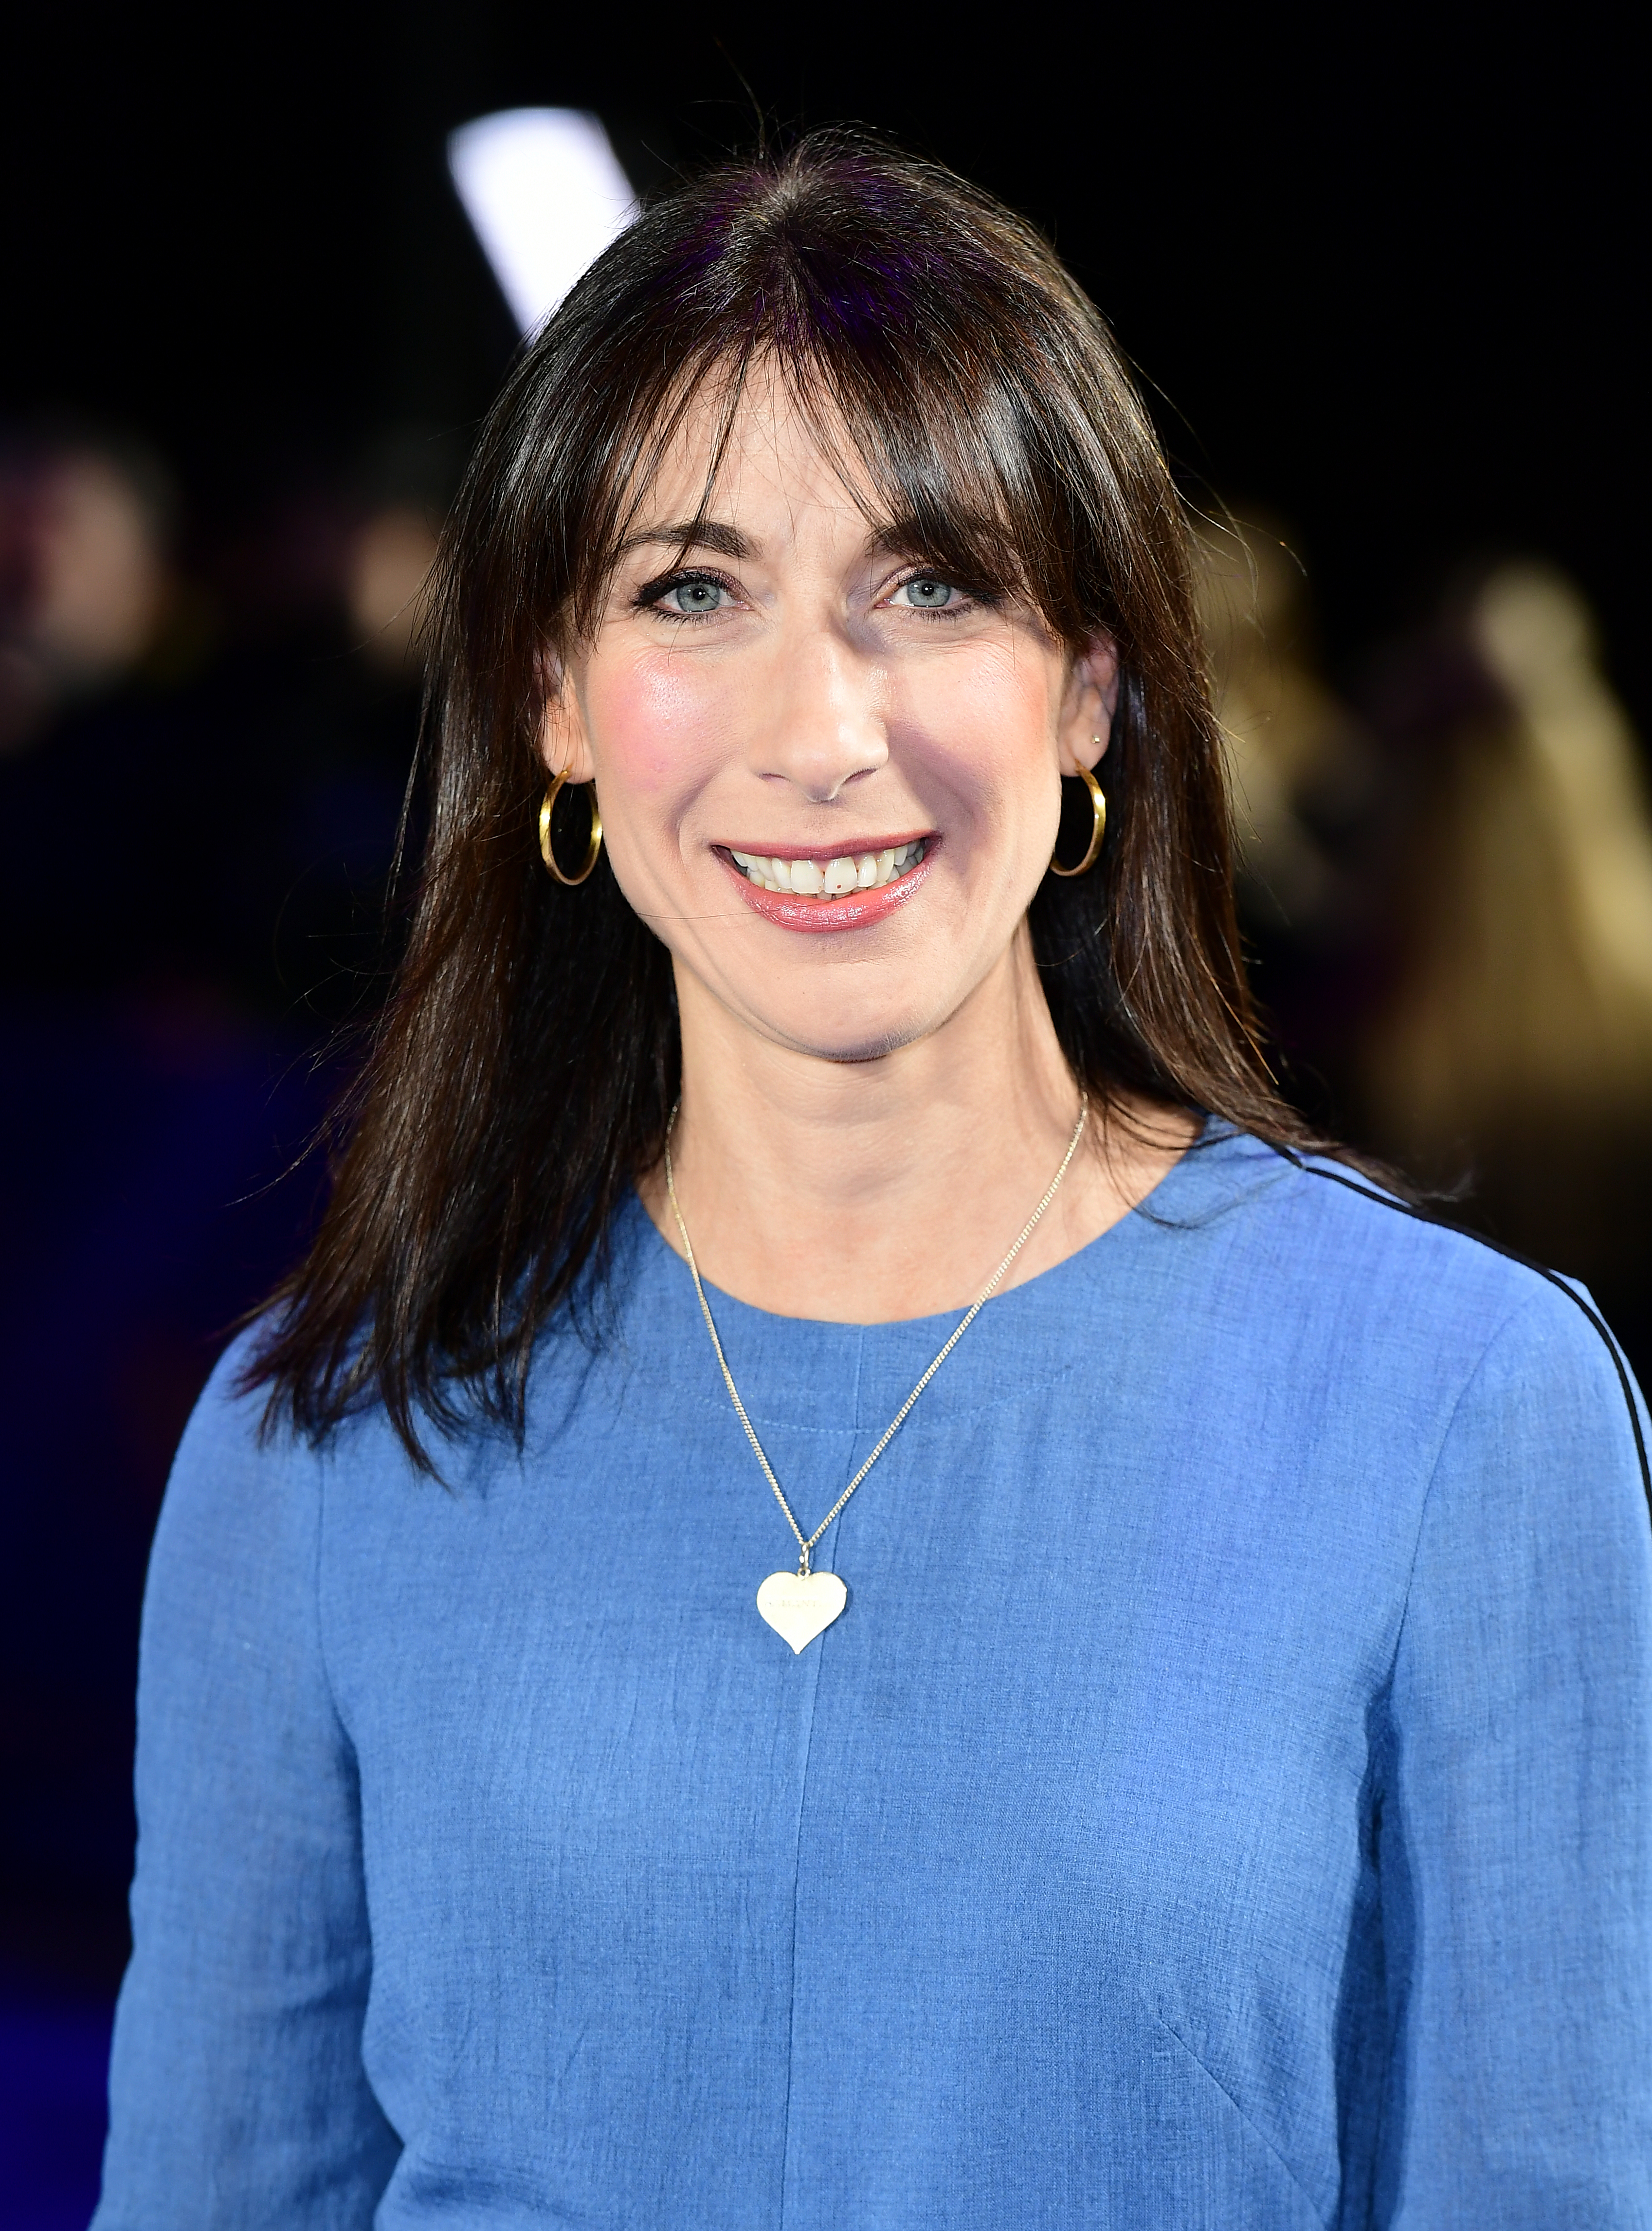 Samantha Cameron the wife of former Prime Minister David Cameron, attended the school. Credit: PA